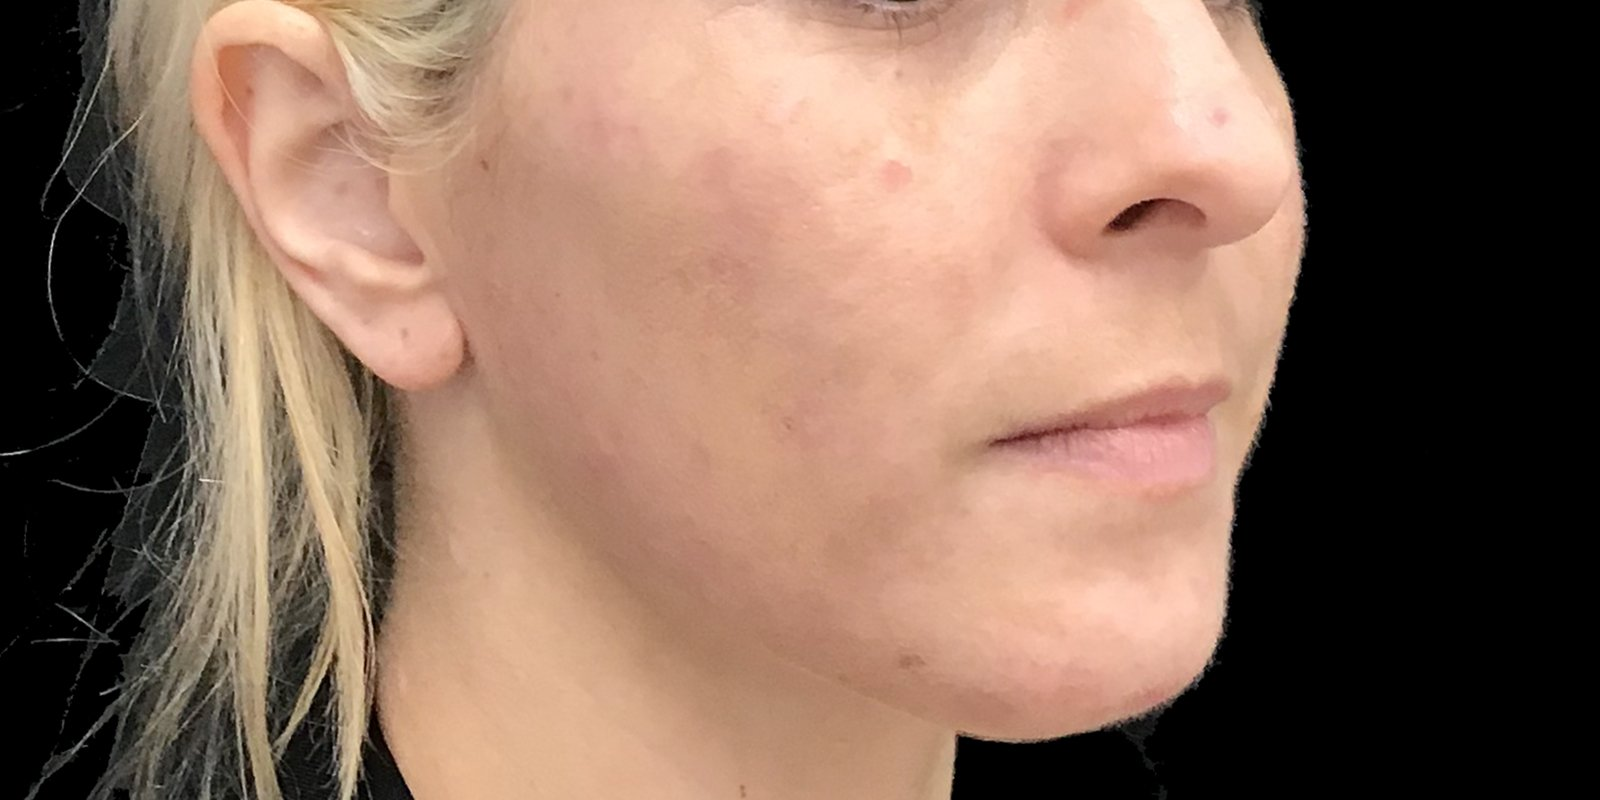 Acne After 1 Peel And Synergie Products